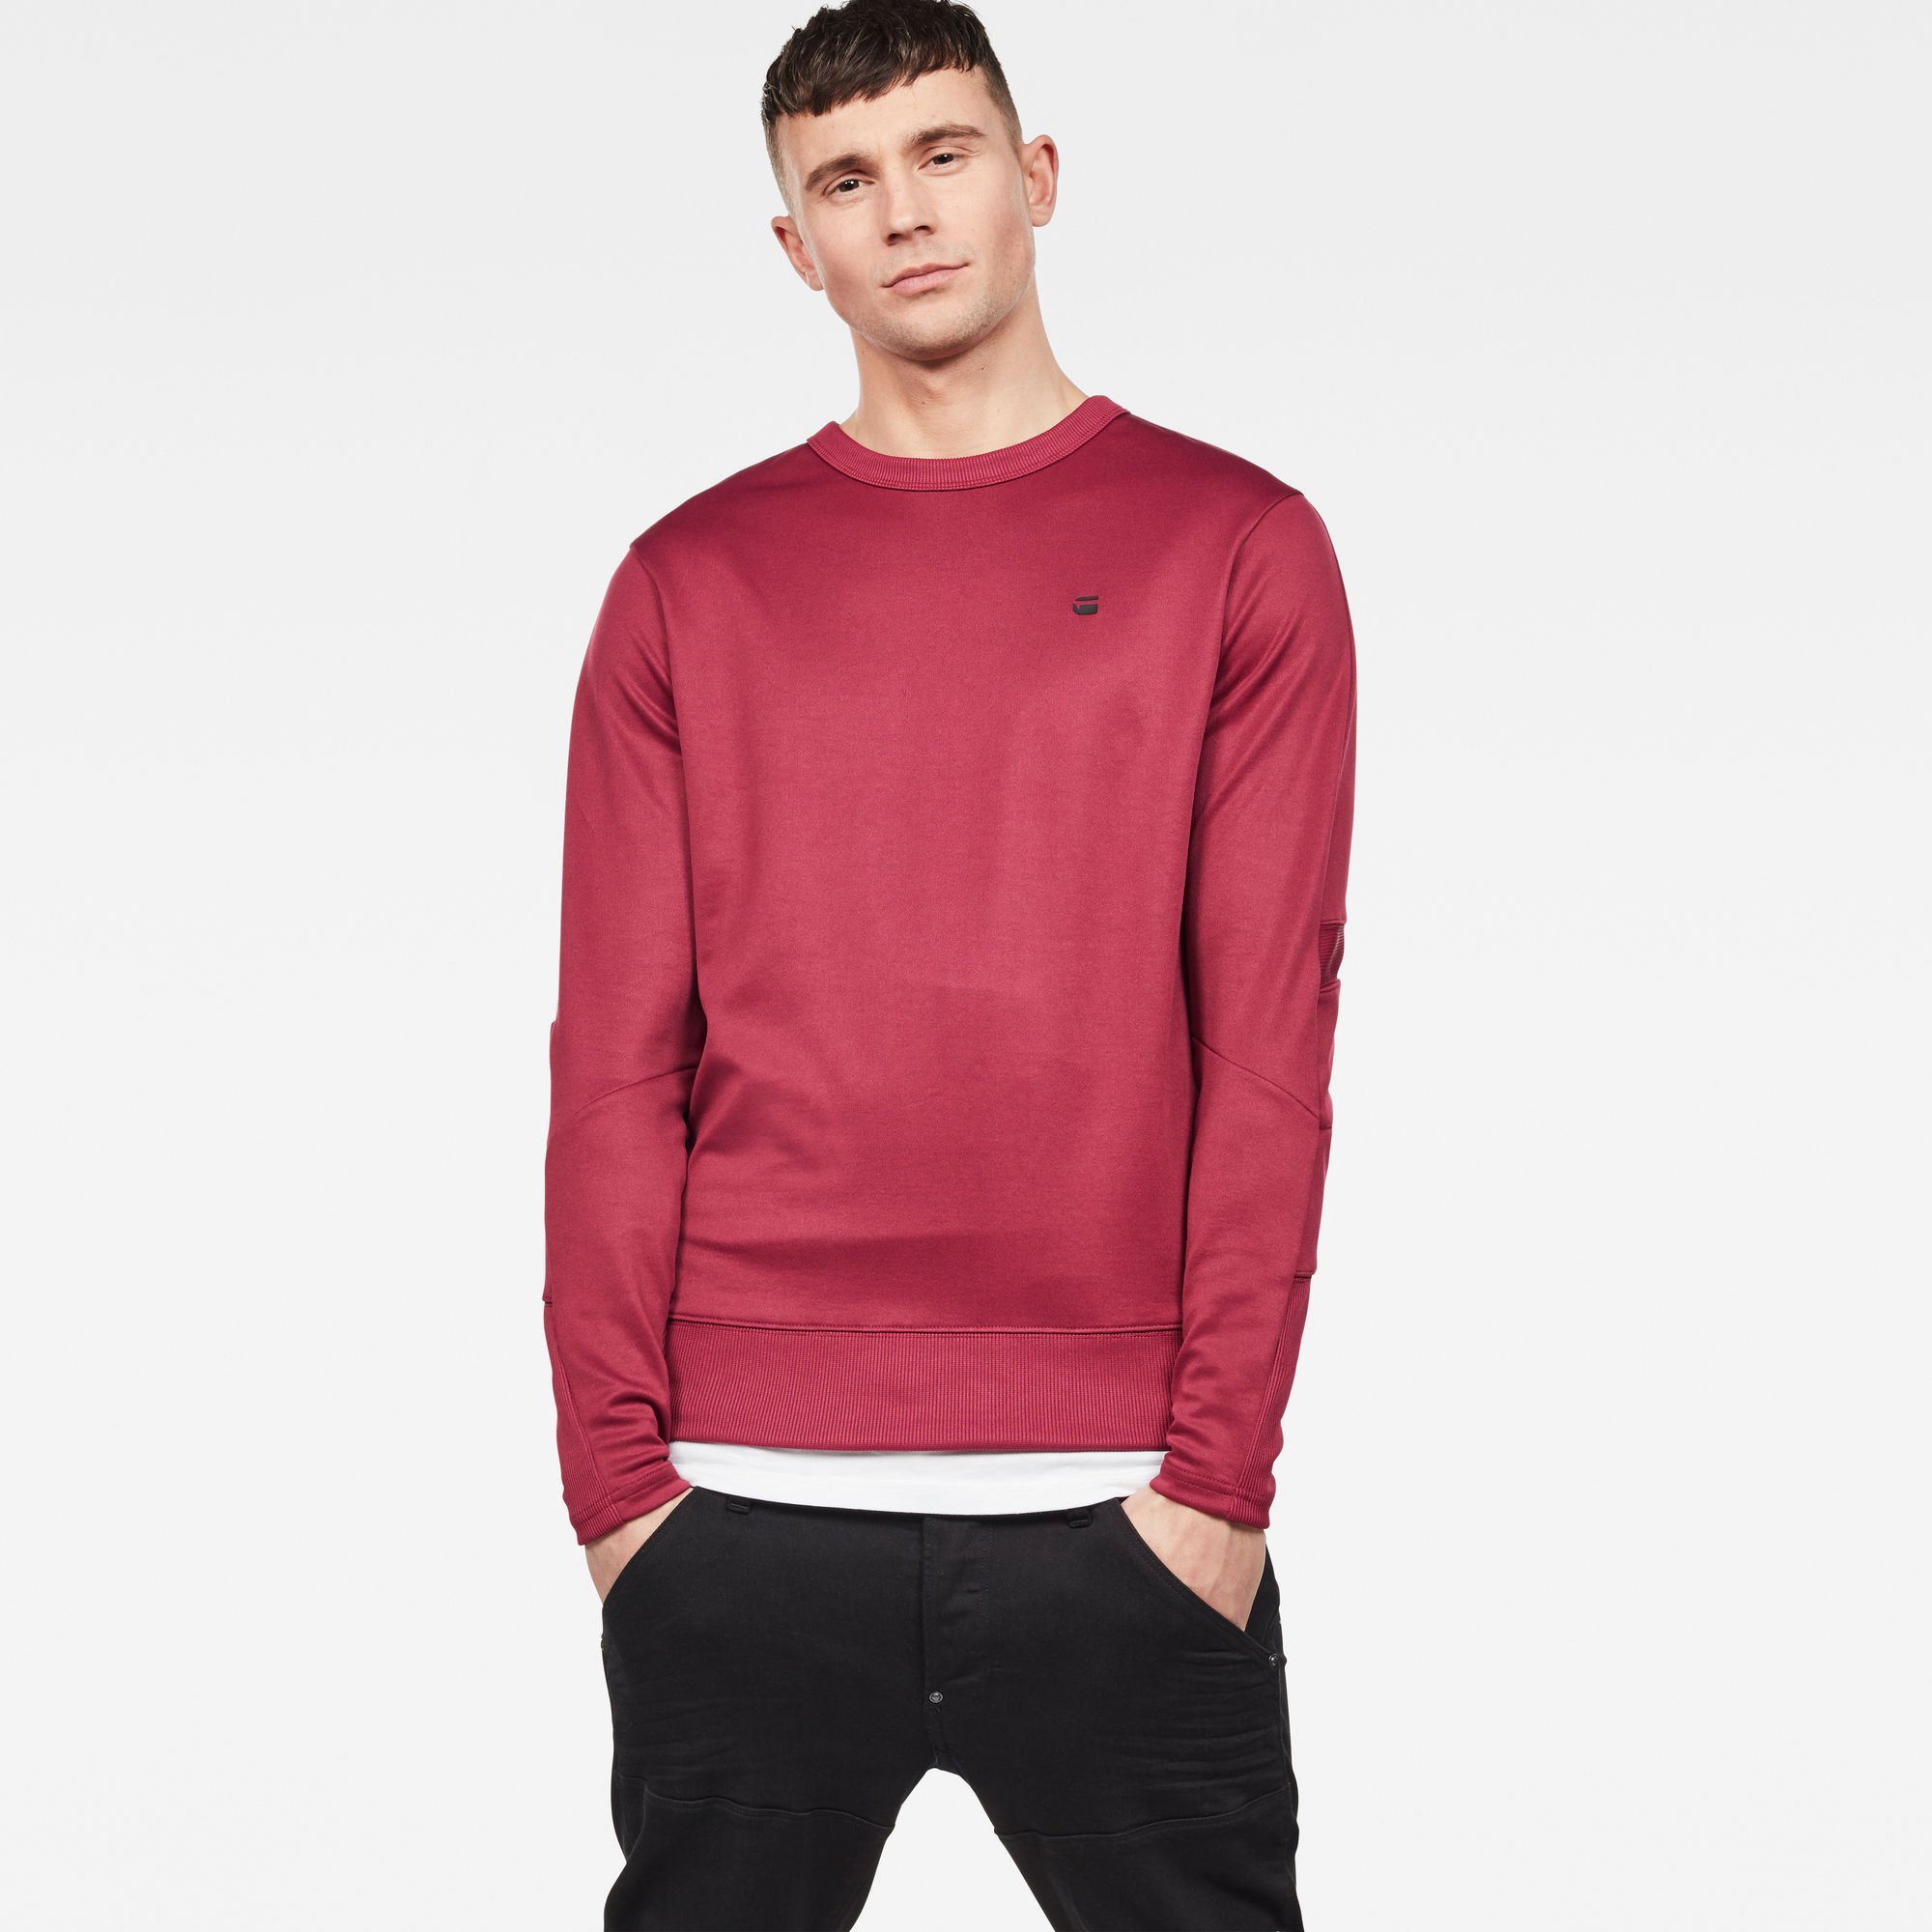 Image of G Star Raw Motac-X Slim Sweater